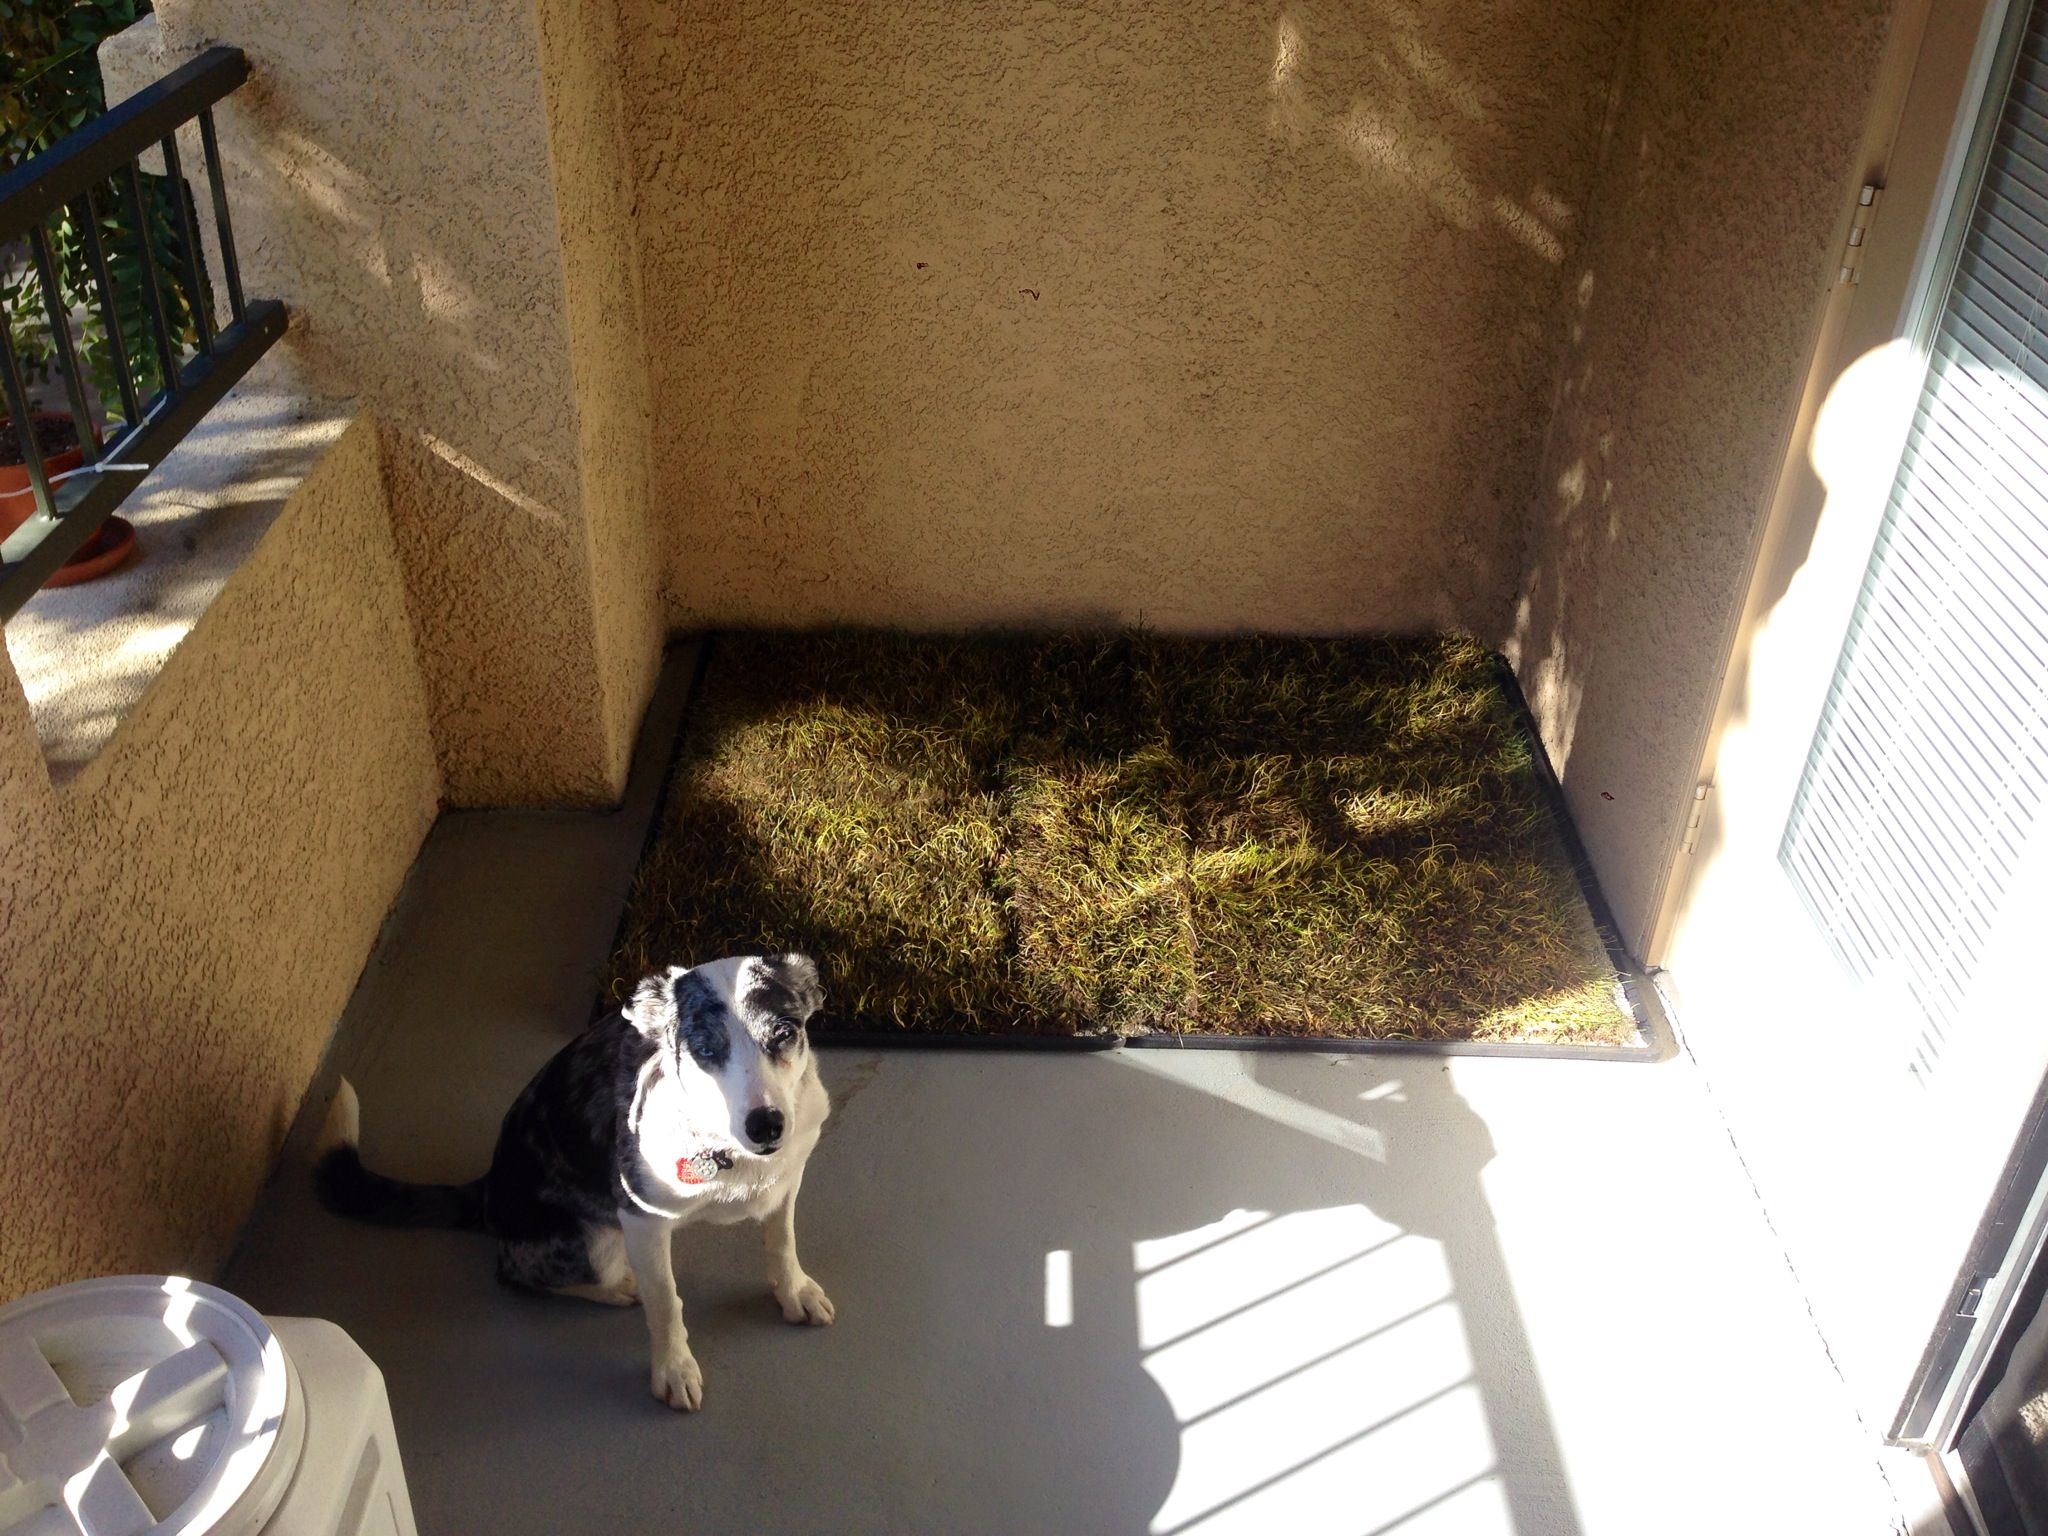 My Dogu0027s New Patio/porch Potty. We Bought Two 24x48 Dog Crate Pans From